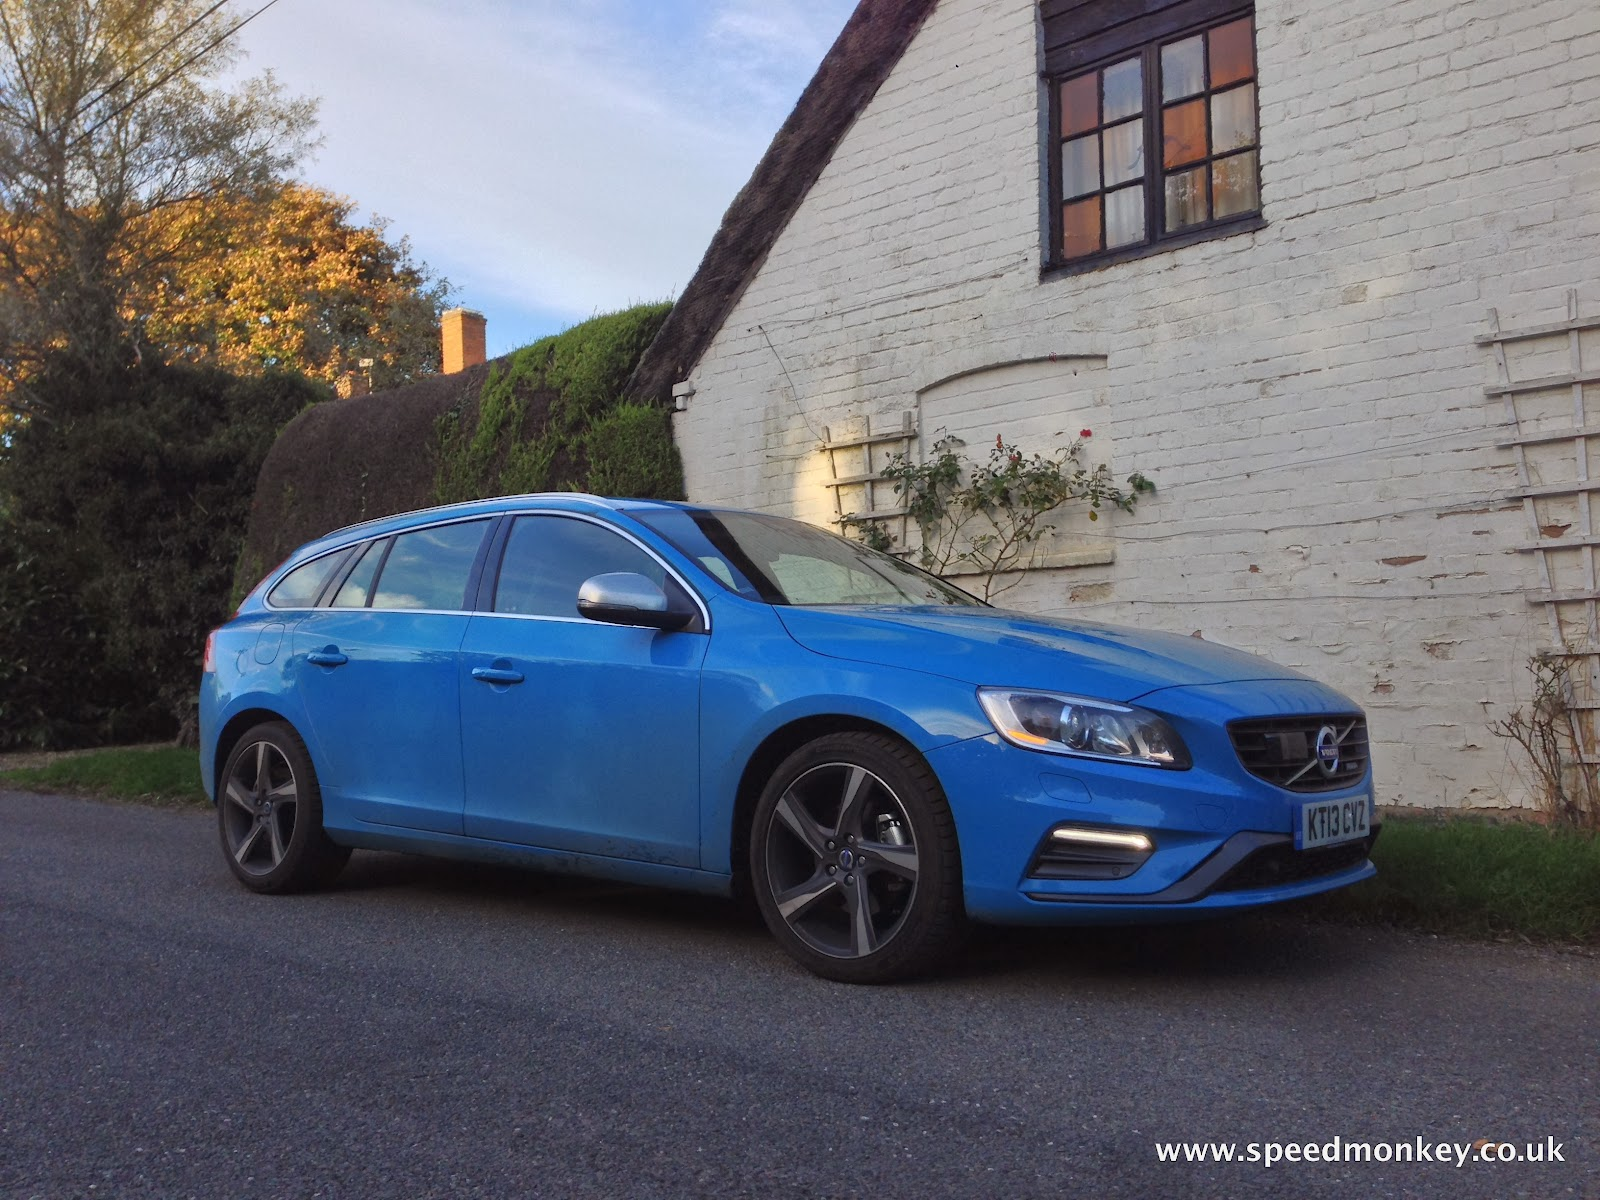 Speedmonkey Volvo V60 D3 R Design Review 5 Cylinder Engine Problems Matt Hubbard Reviews The 2013 Lux Estate Version Of S60